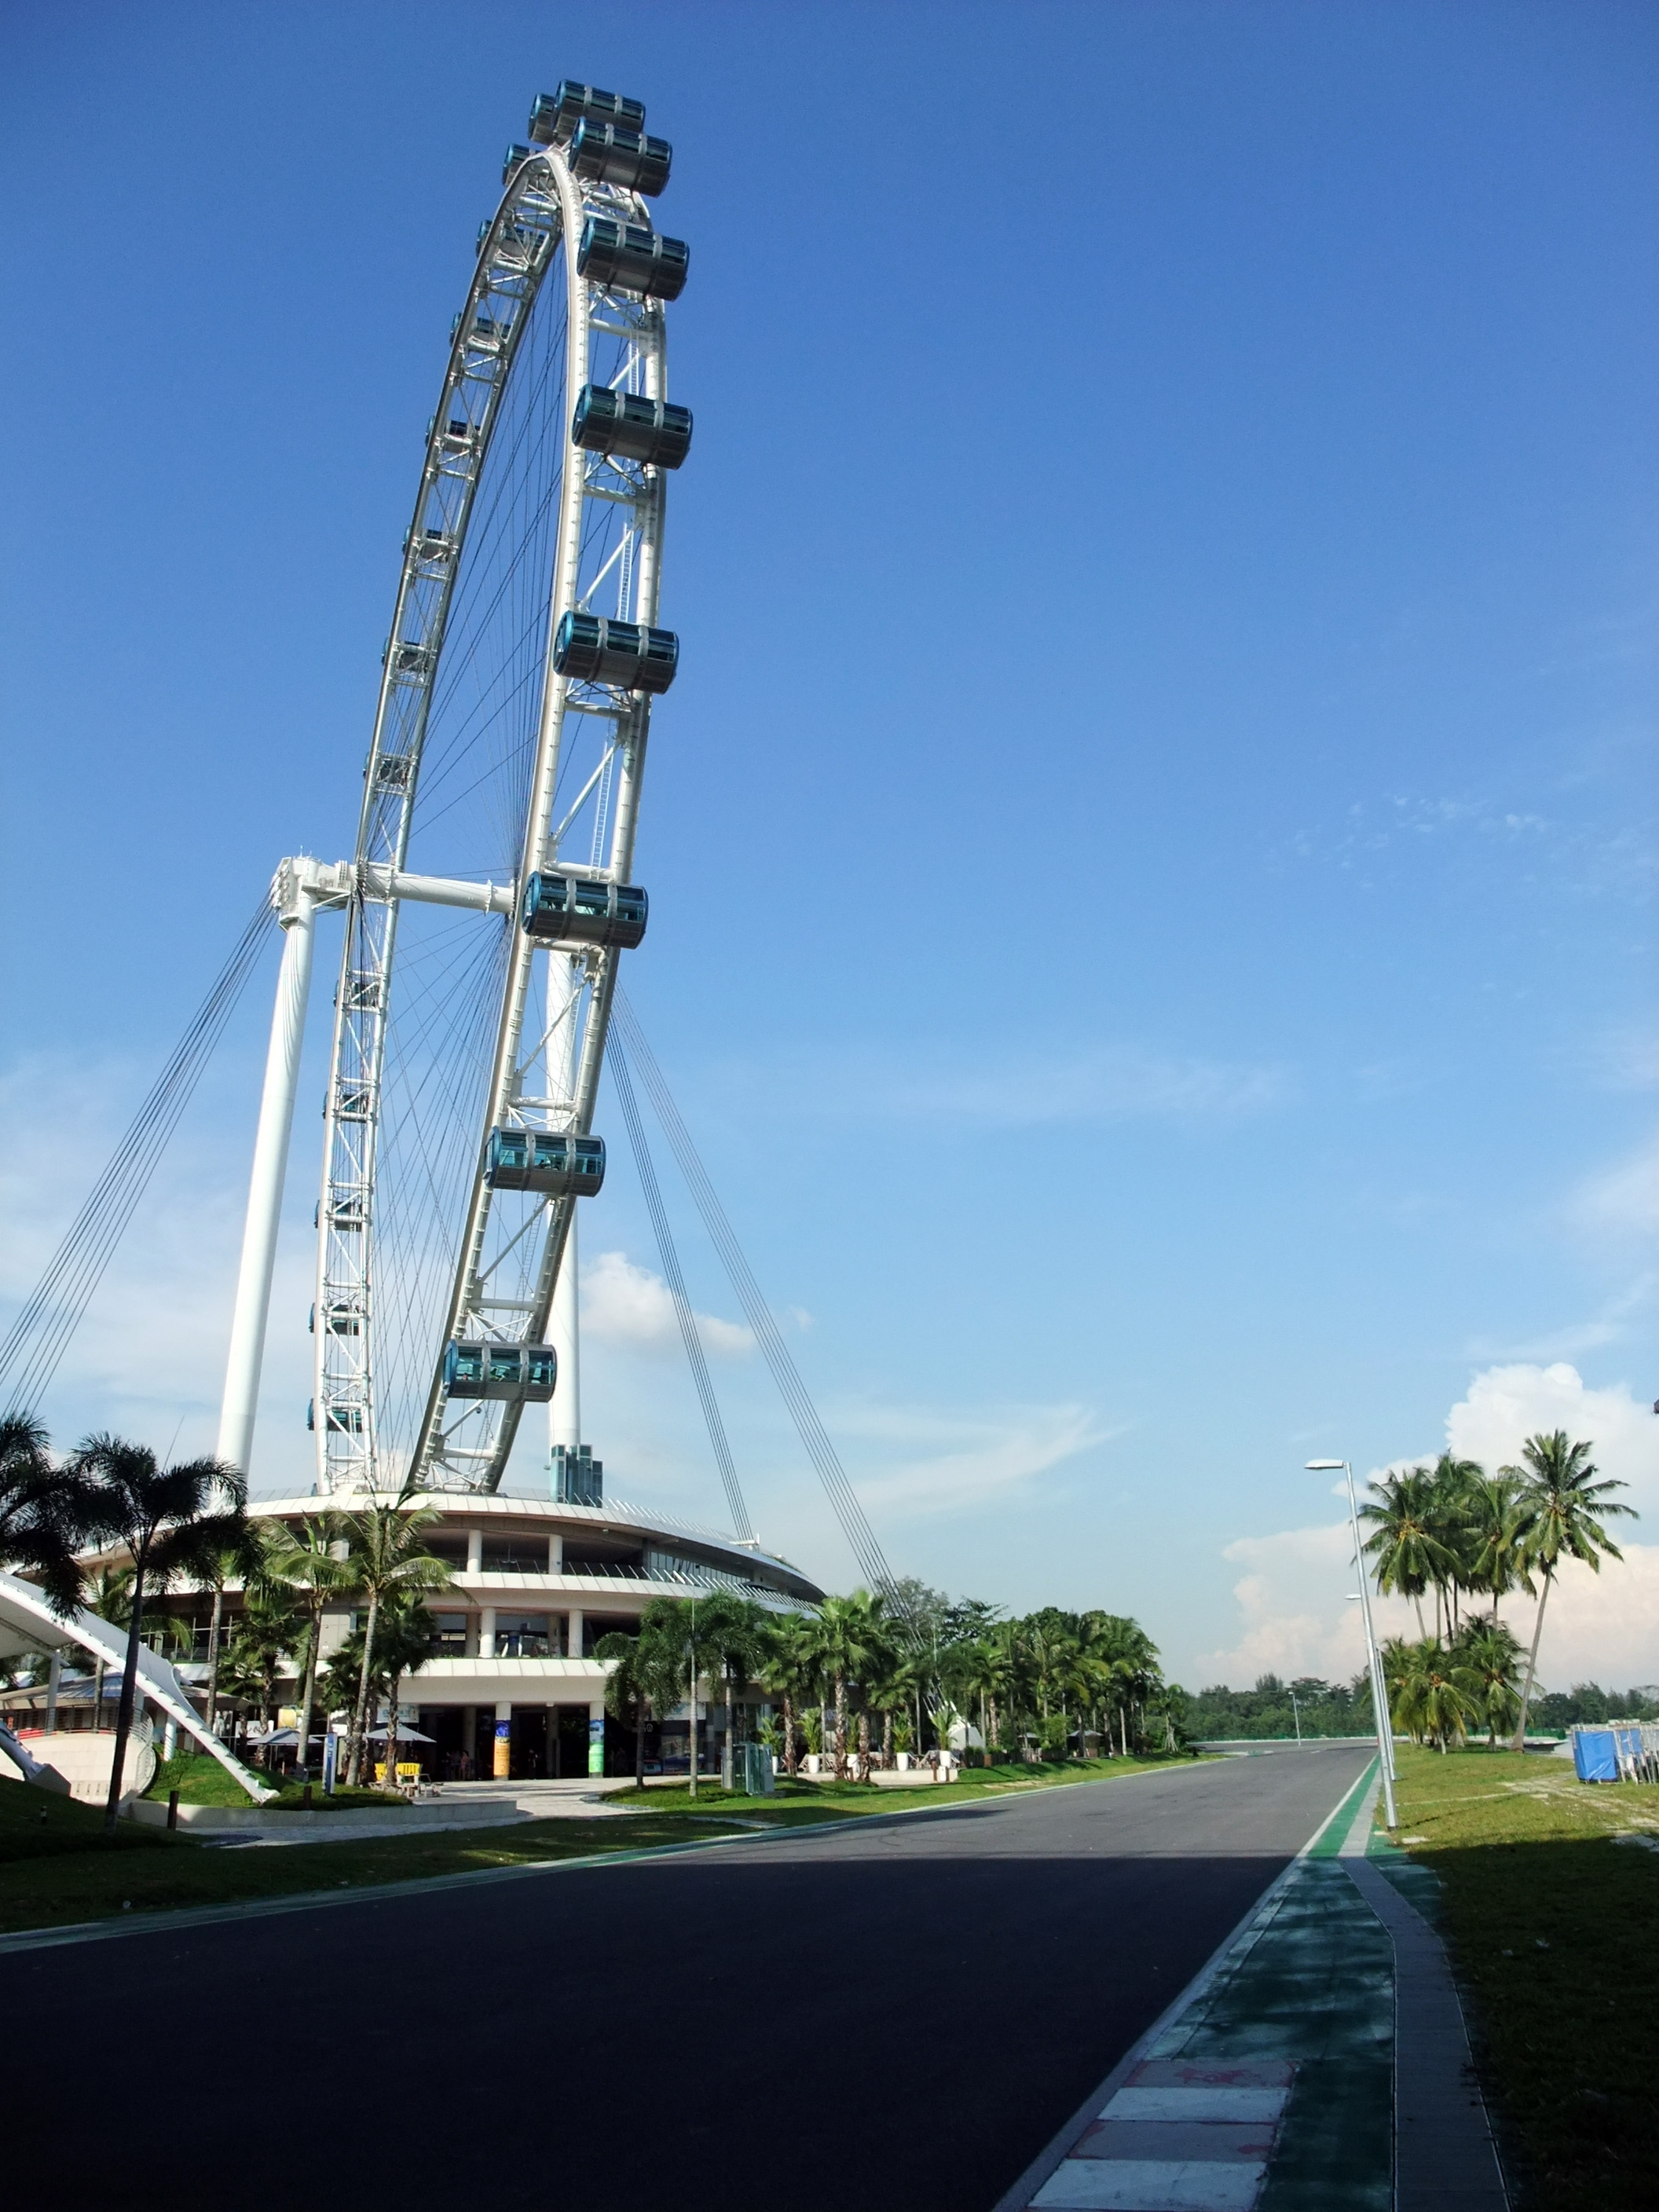 http://upload.wikimedia.org/wikipedia/commons/6/62/Singapore_Flyer_and_racetrack.JPG